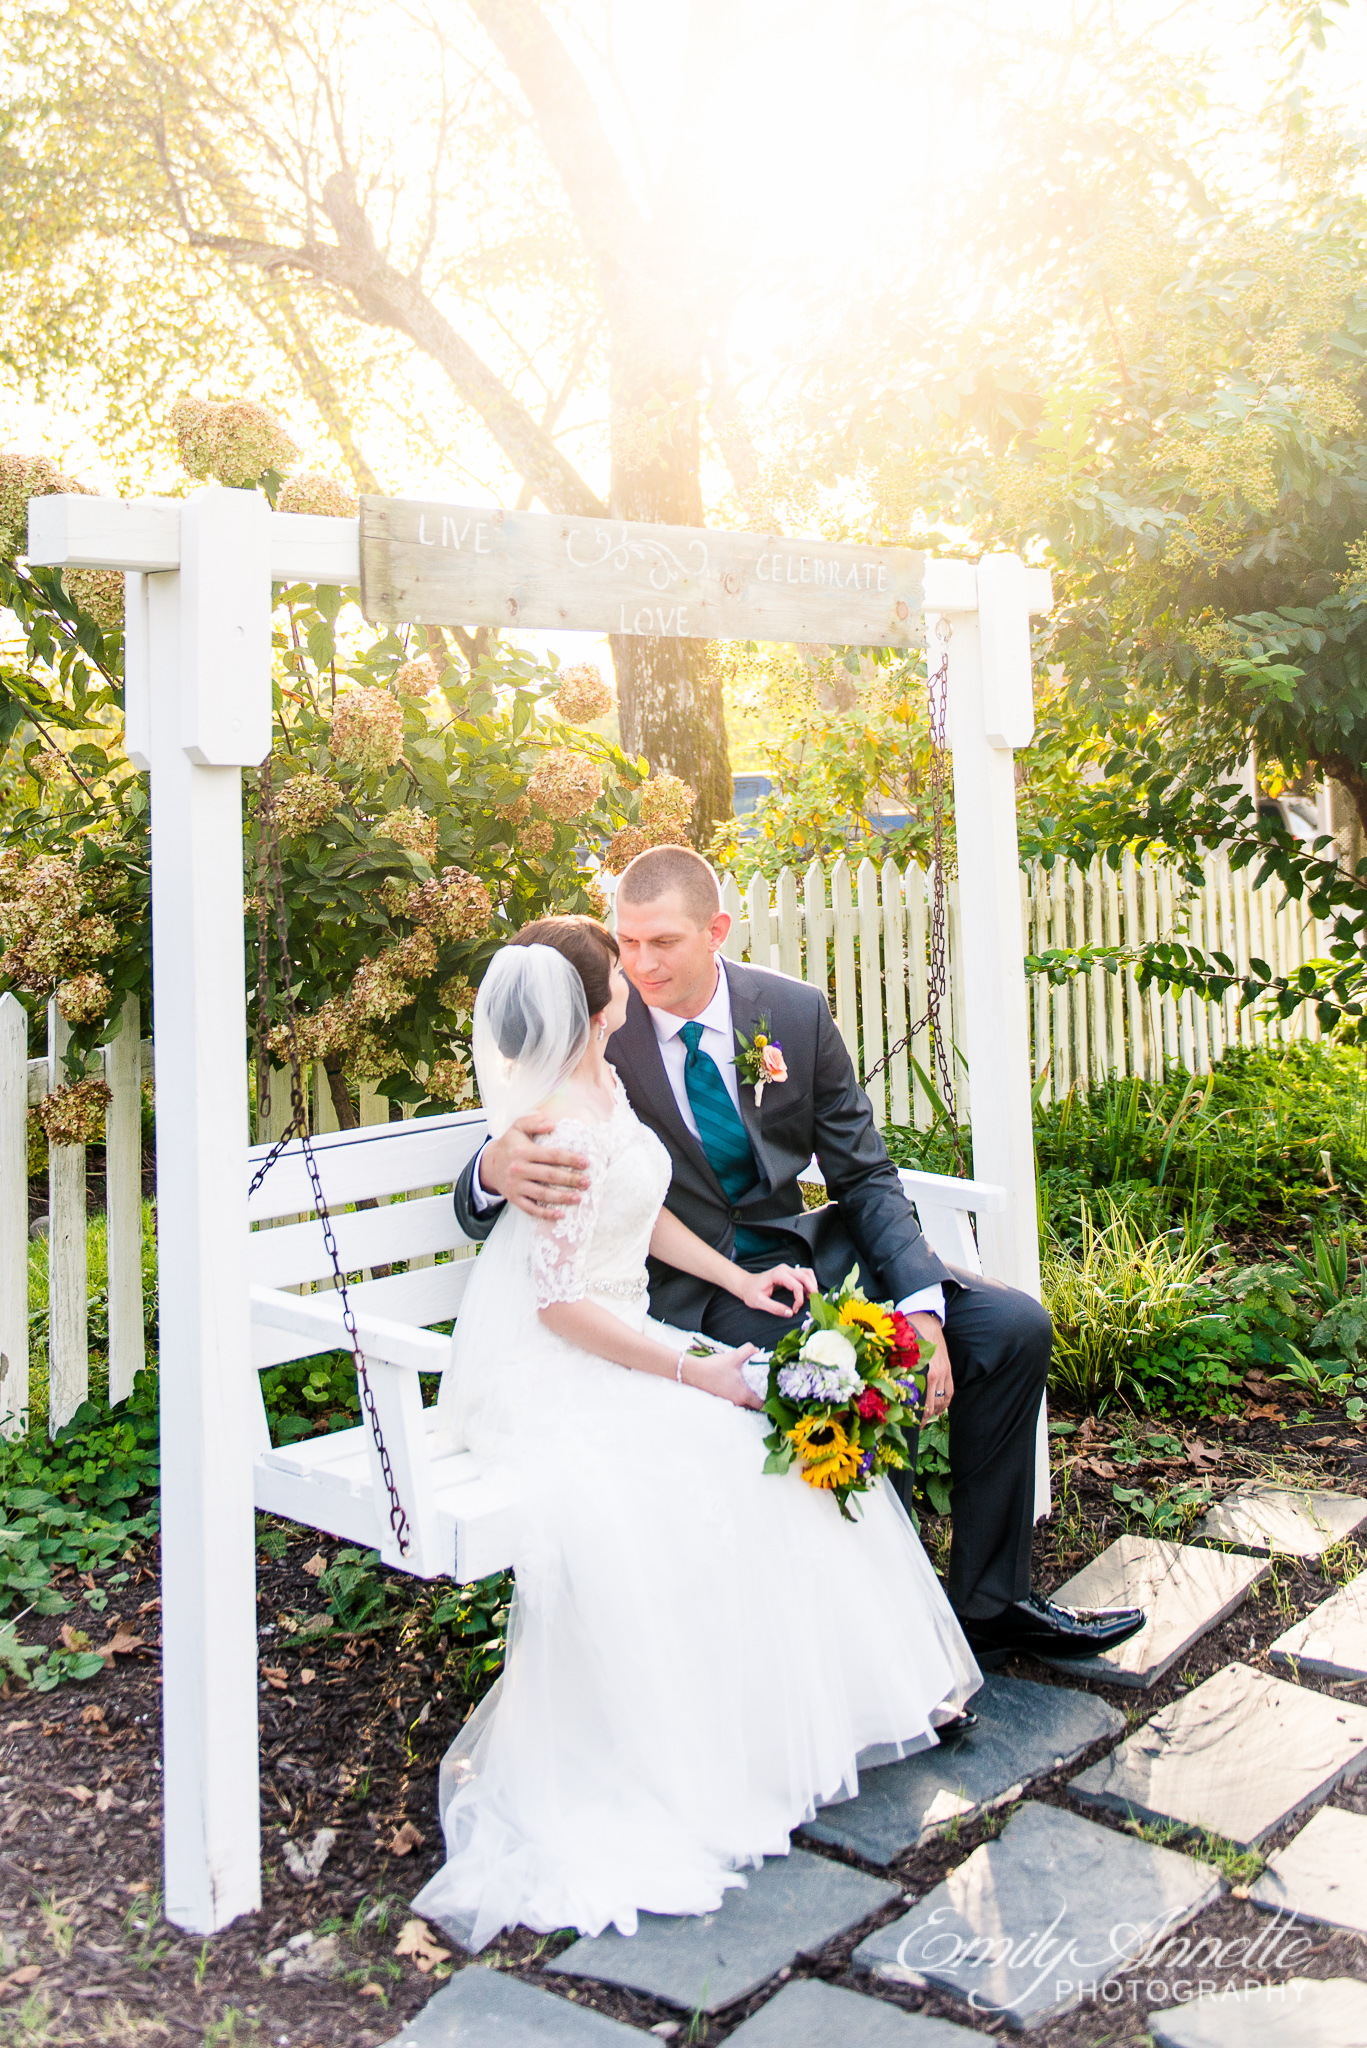 A bride and groom share a quiet moment together on a porch swing during their country wedding at Amber Grove near Richmond, Virginia